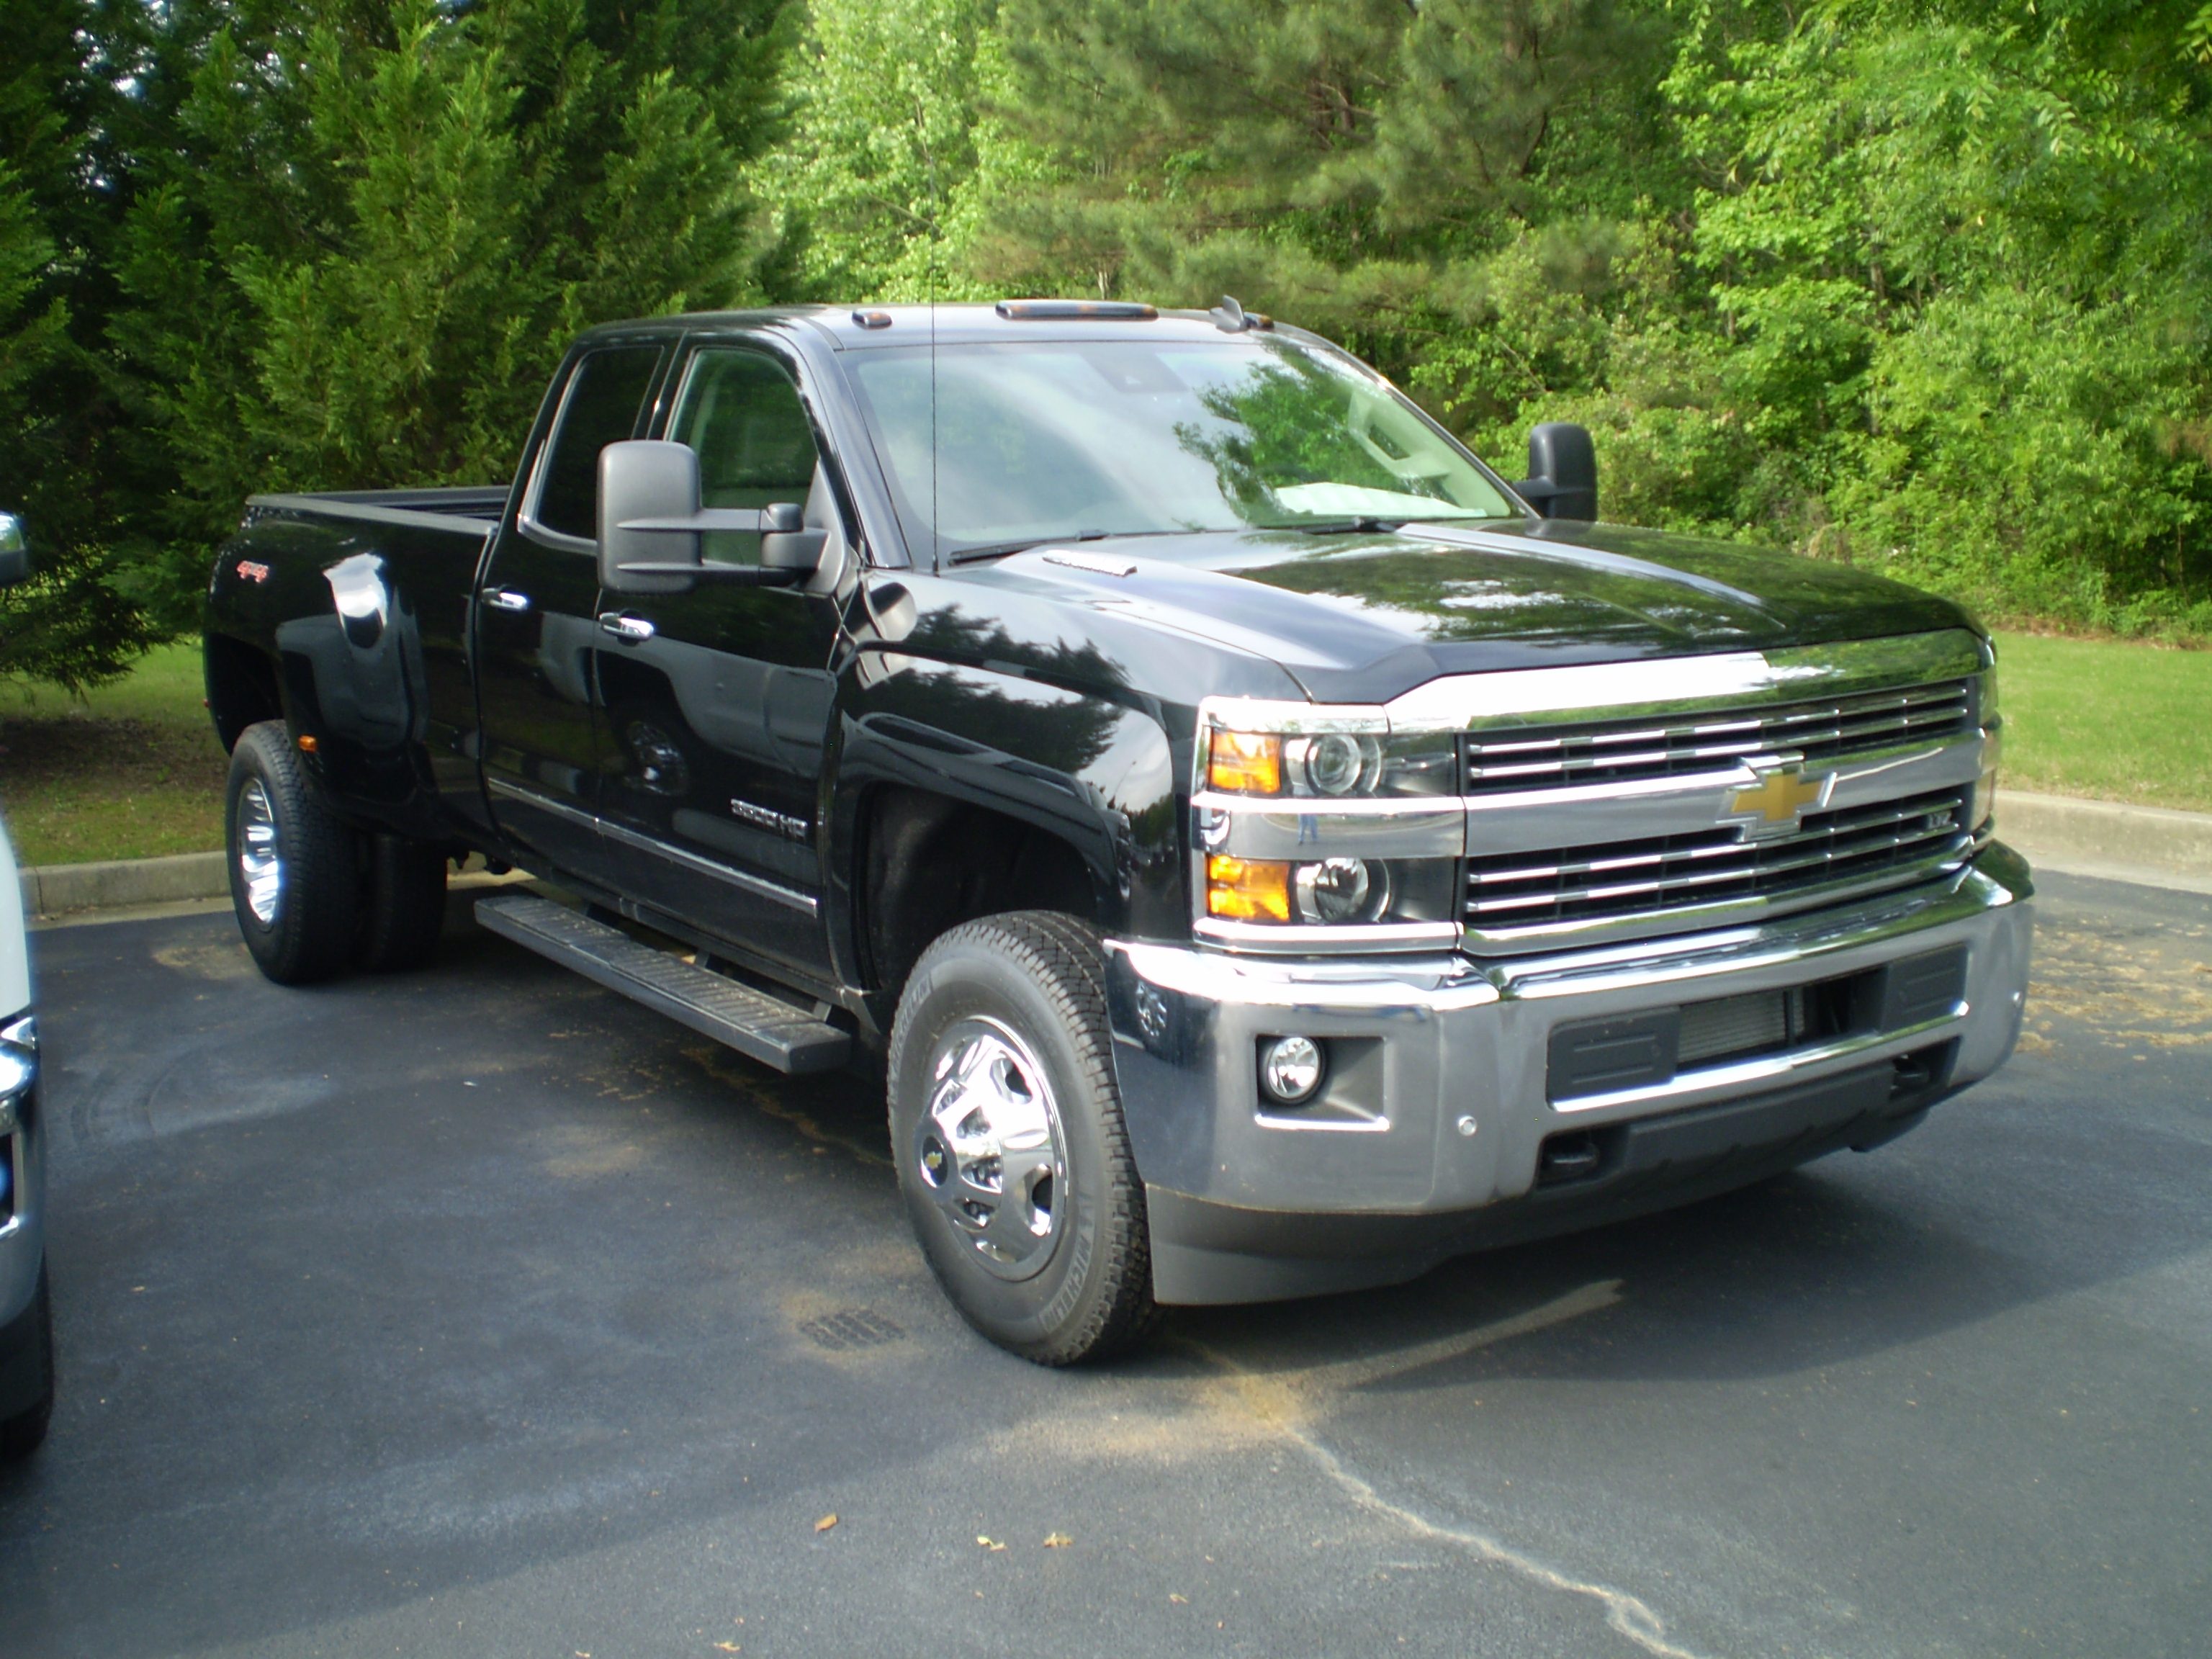 List of Chevrolet vehicles   Wikipedia 2015 chevrolet silverado ltz double cab 3500 hd  observe  JPG